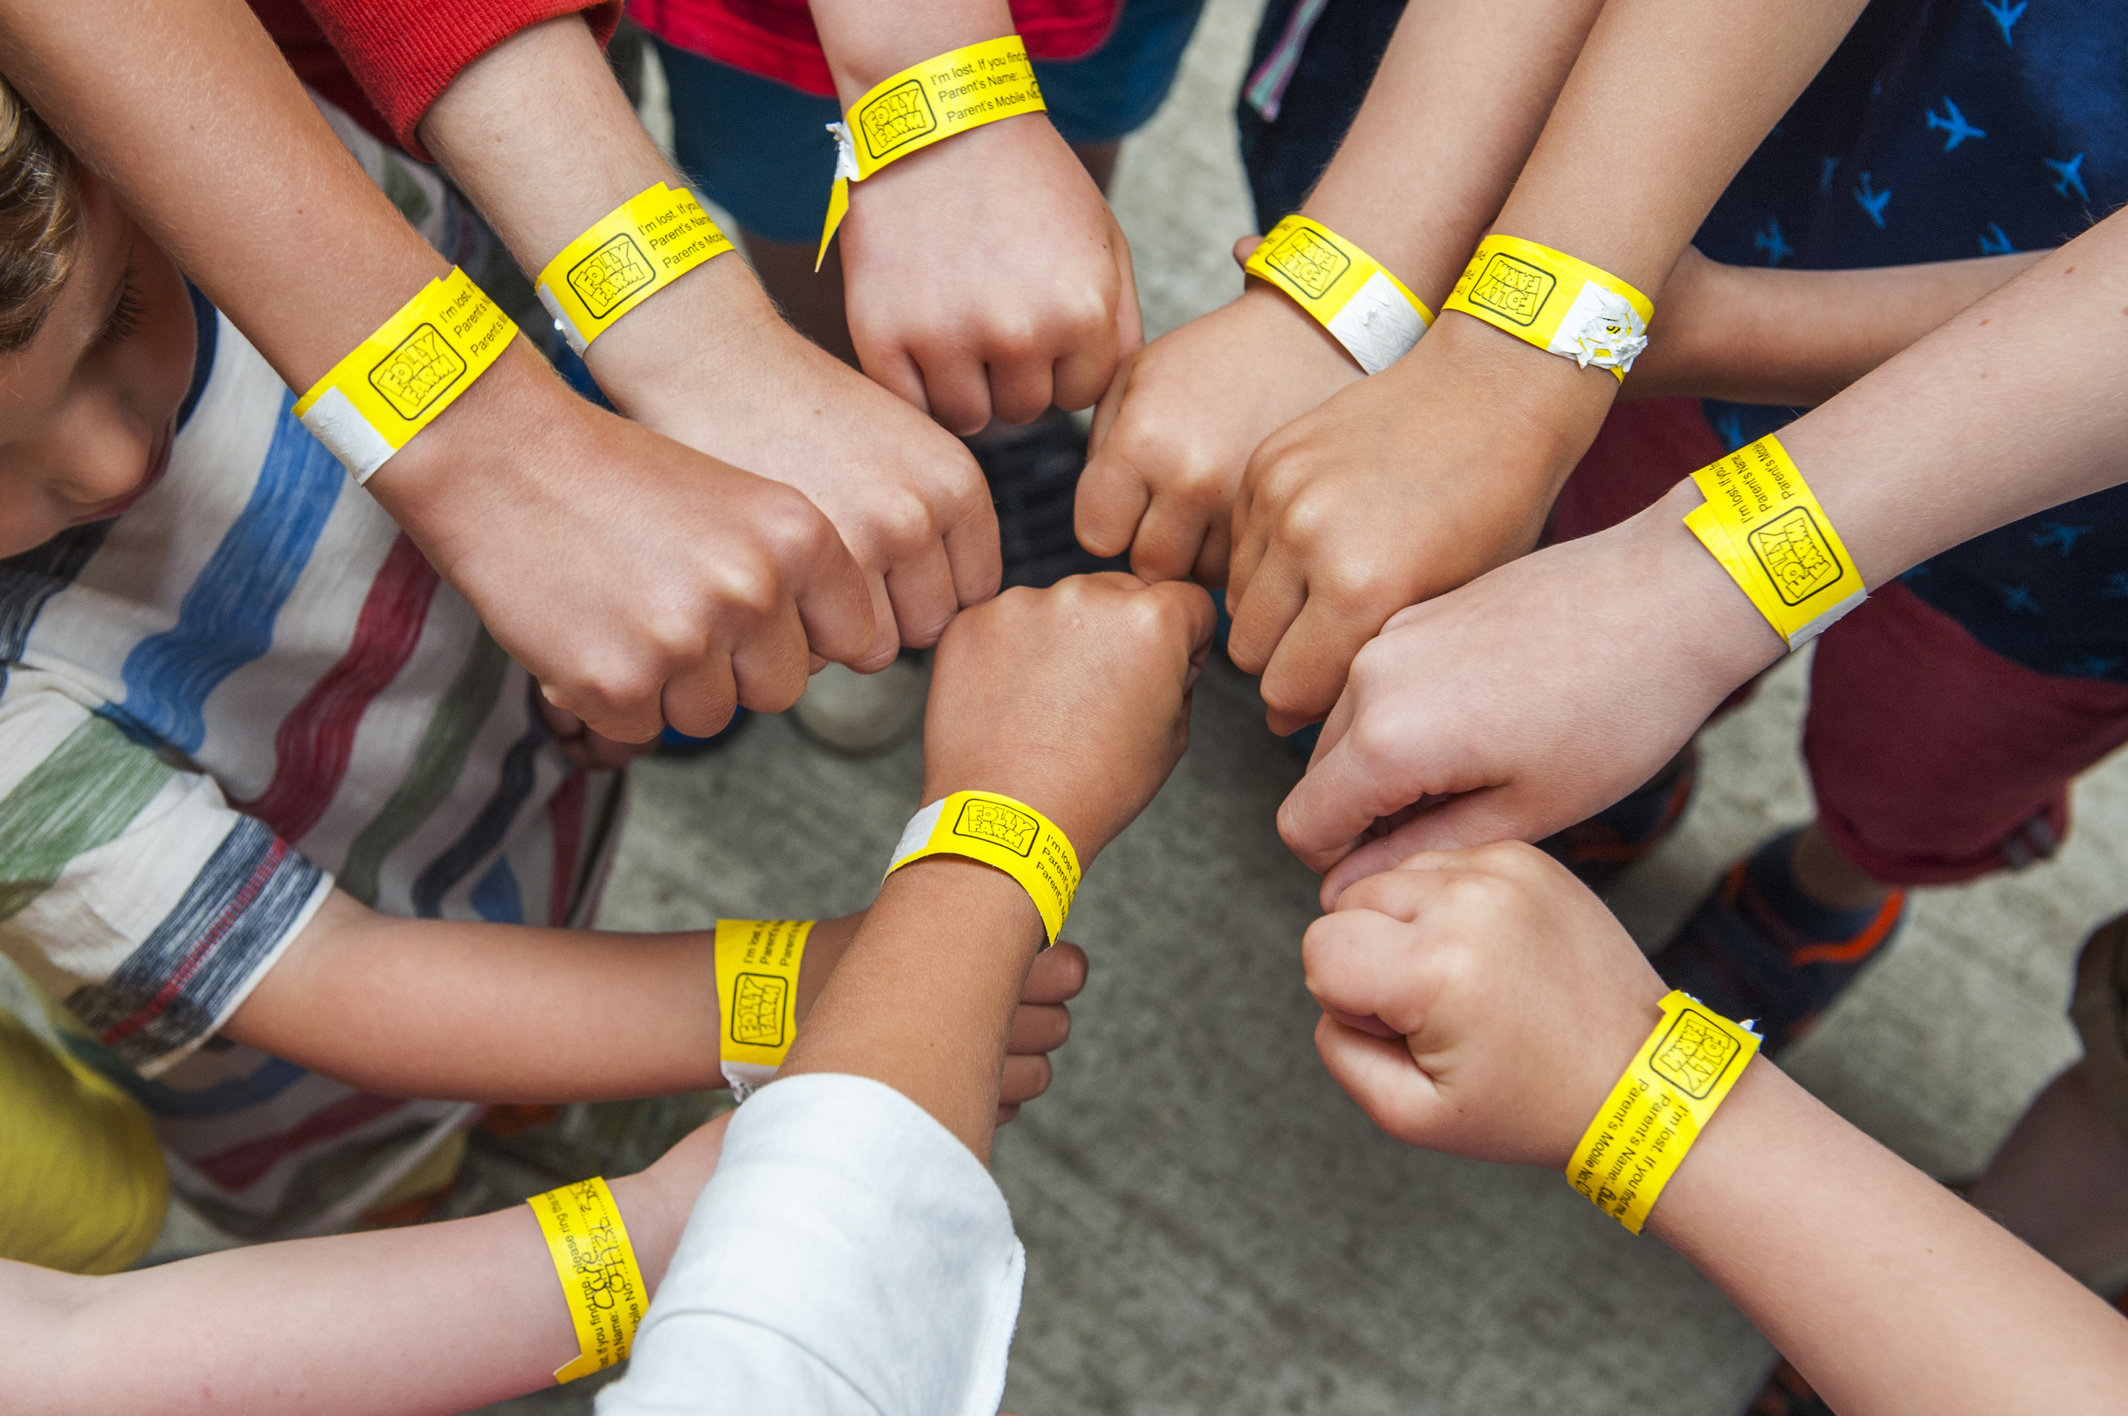 Children wearing lost child wristbands